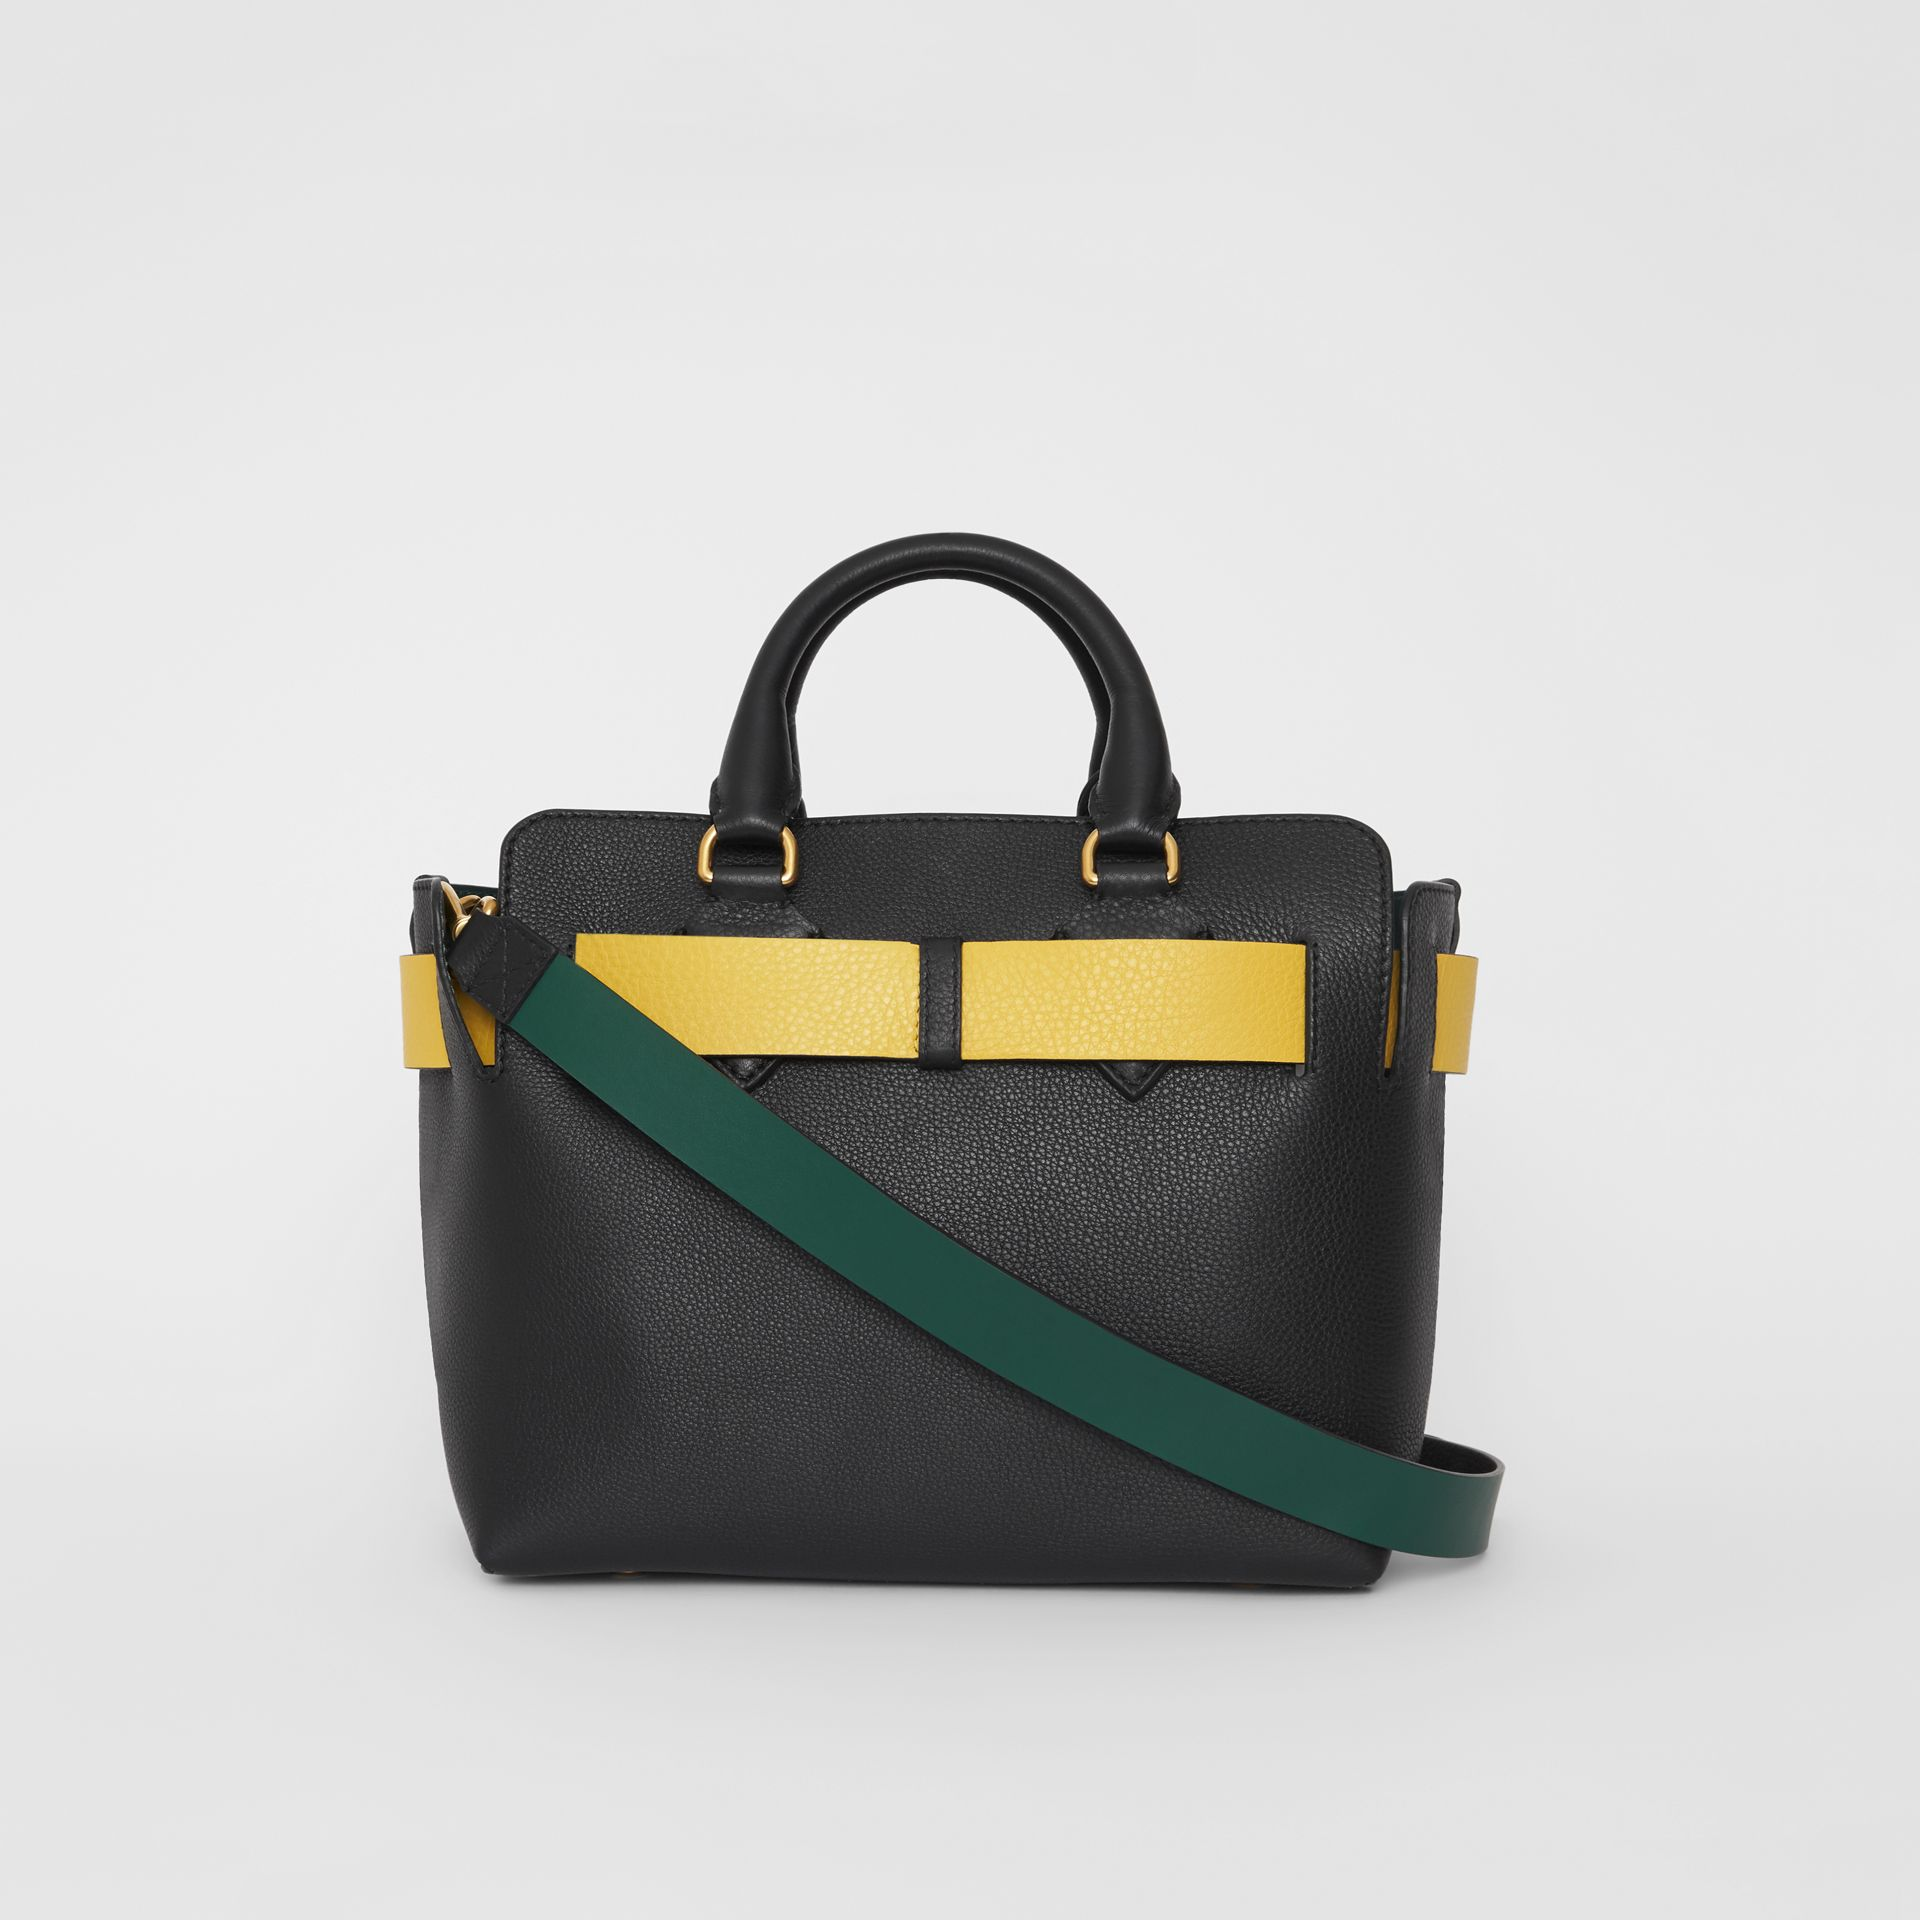 Petit sac The Belt en cuir (Noir/jaune) - Femme | Burberry - photo de la galerie 7